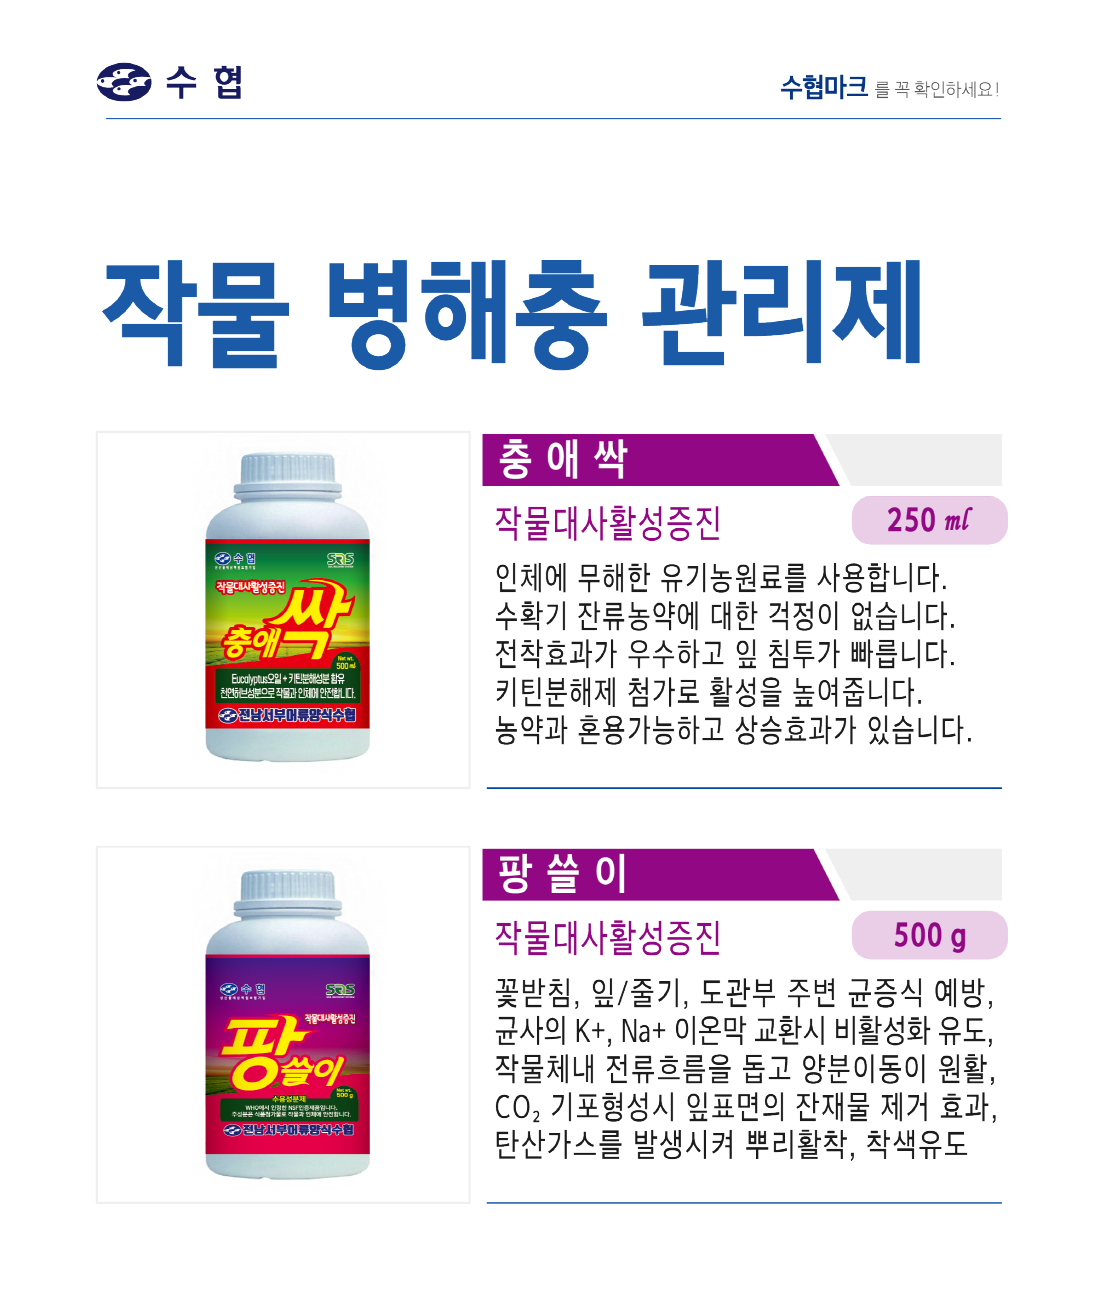 http://suhyup2019.handpr.kr/bs/se2/imgup/1589964617det2_s.png